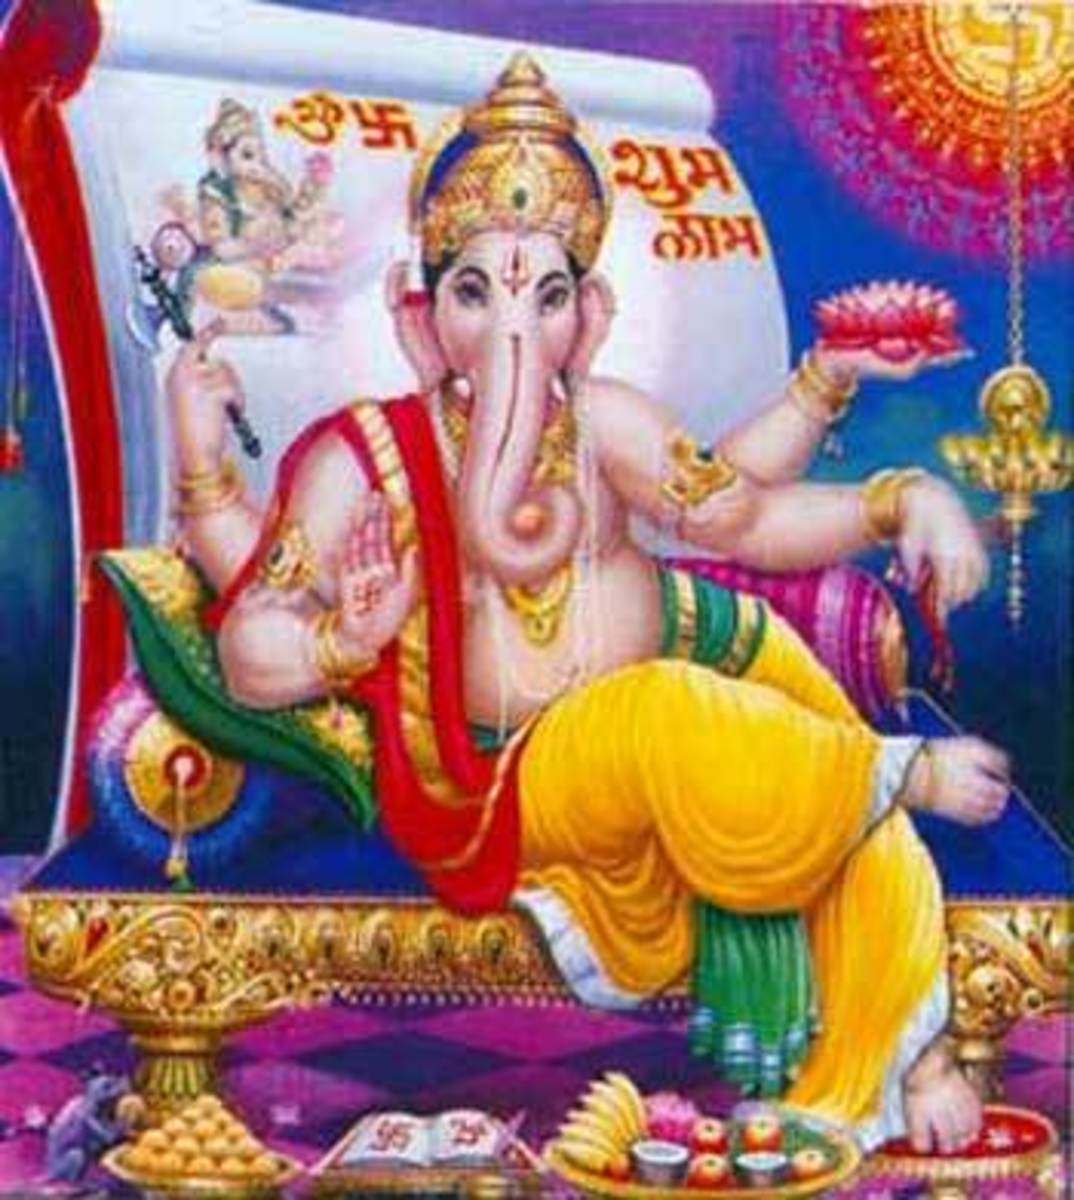 Mantras of Lord Ganesha - The remover of Obstacles